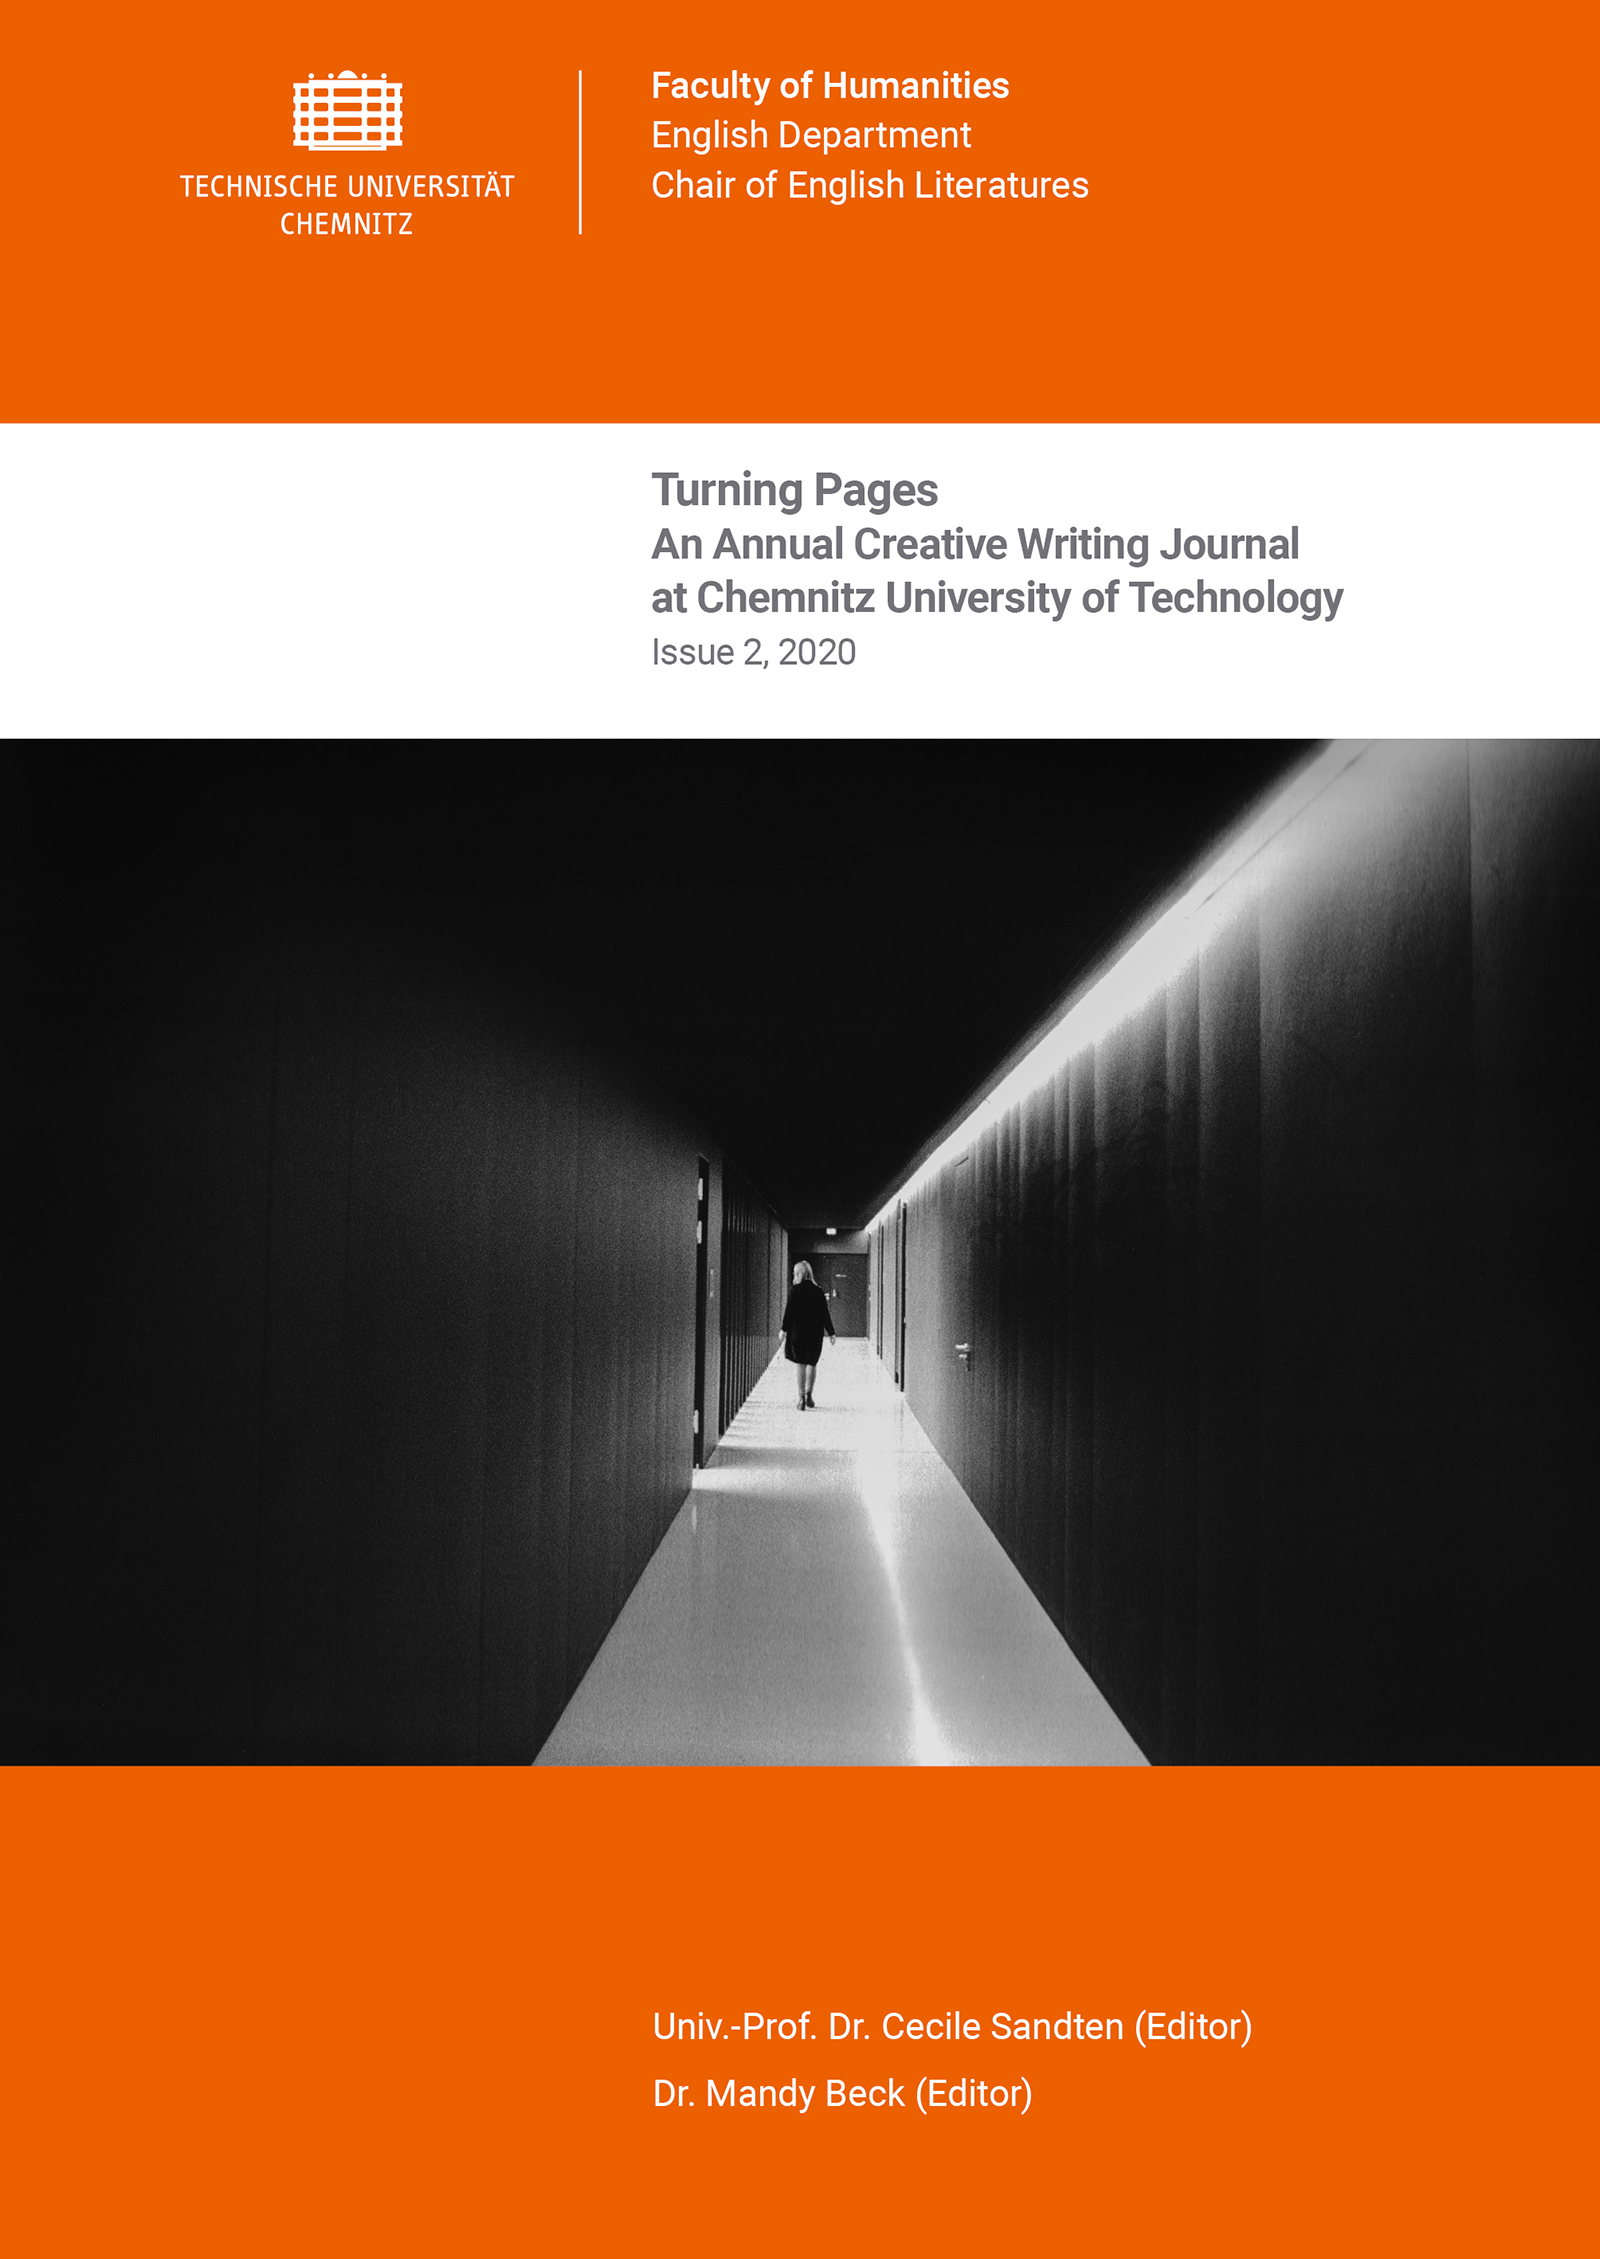 Cover: Turning Pages, Issue 2, 2020 / Editors: Cecile Sandten, Mandy Beck